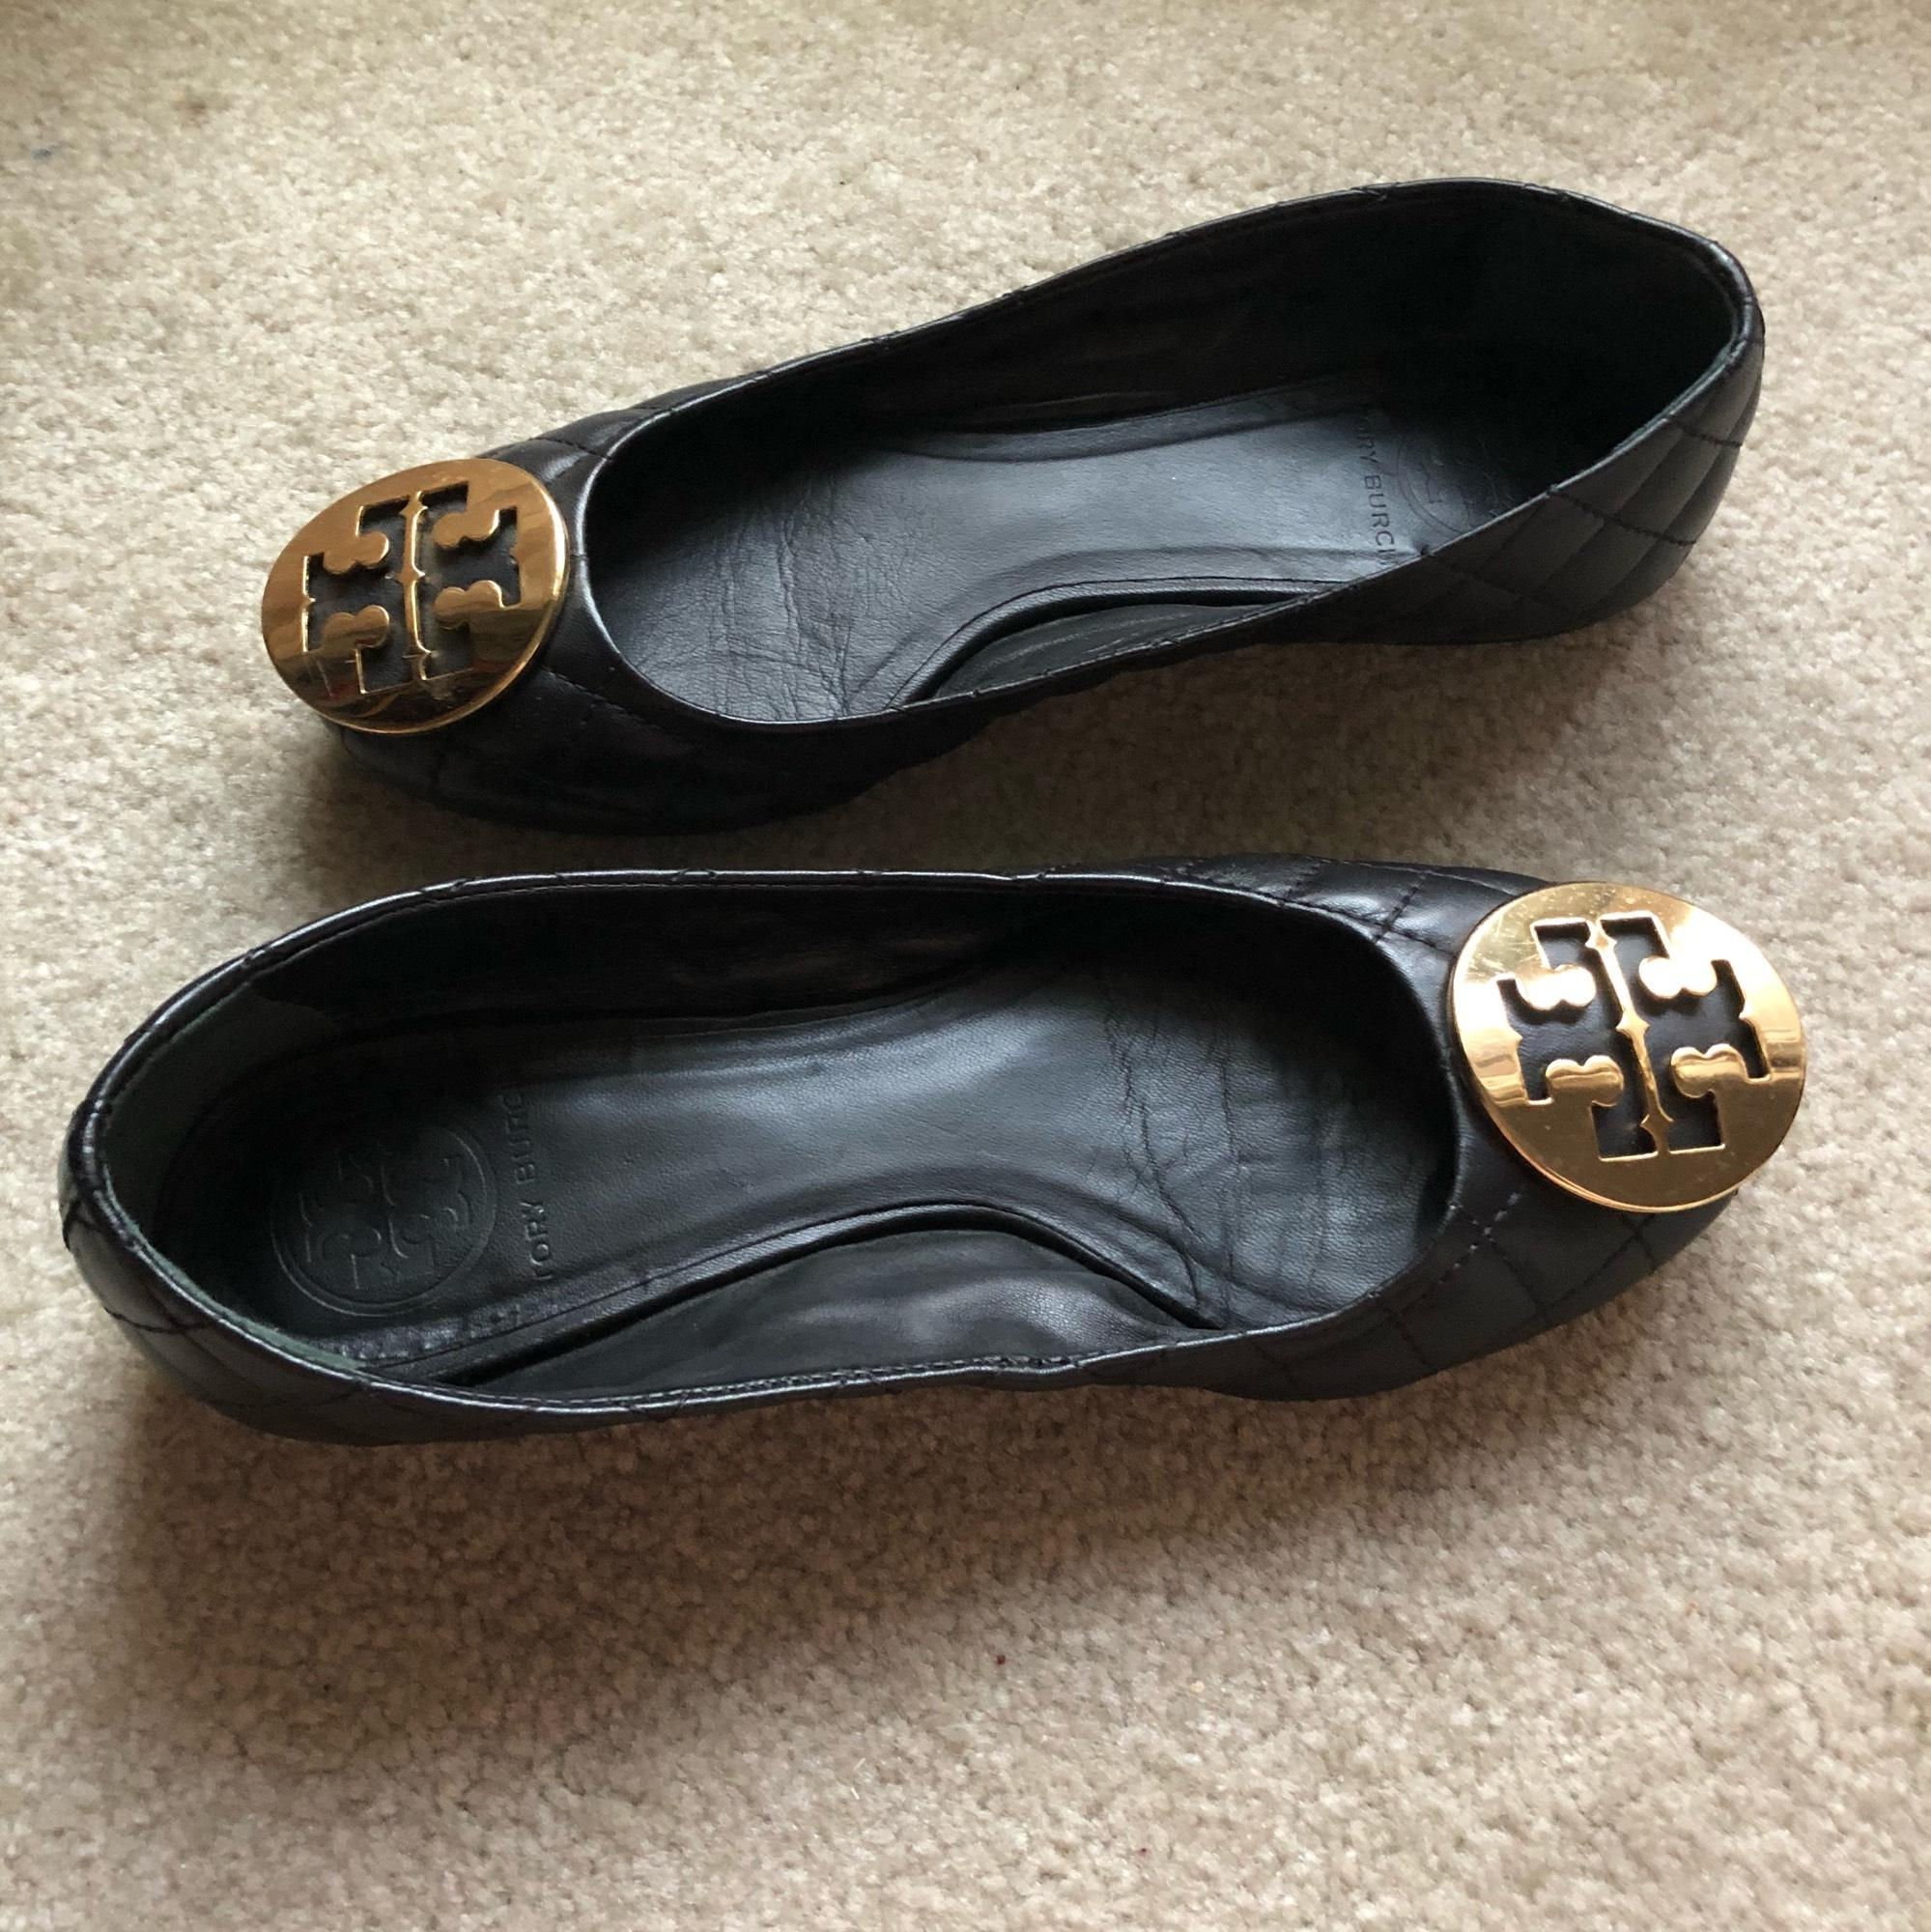 3b57c6492 ... Tory Burch Black with Gold Gold Gold Logo Reva Quilted Flats Size US 5  Regular ...